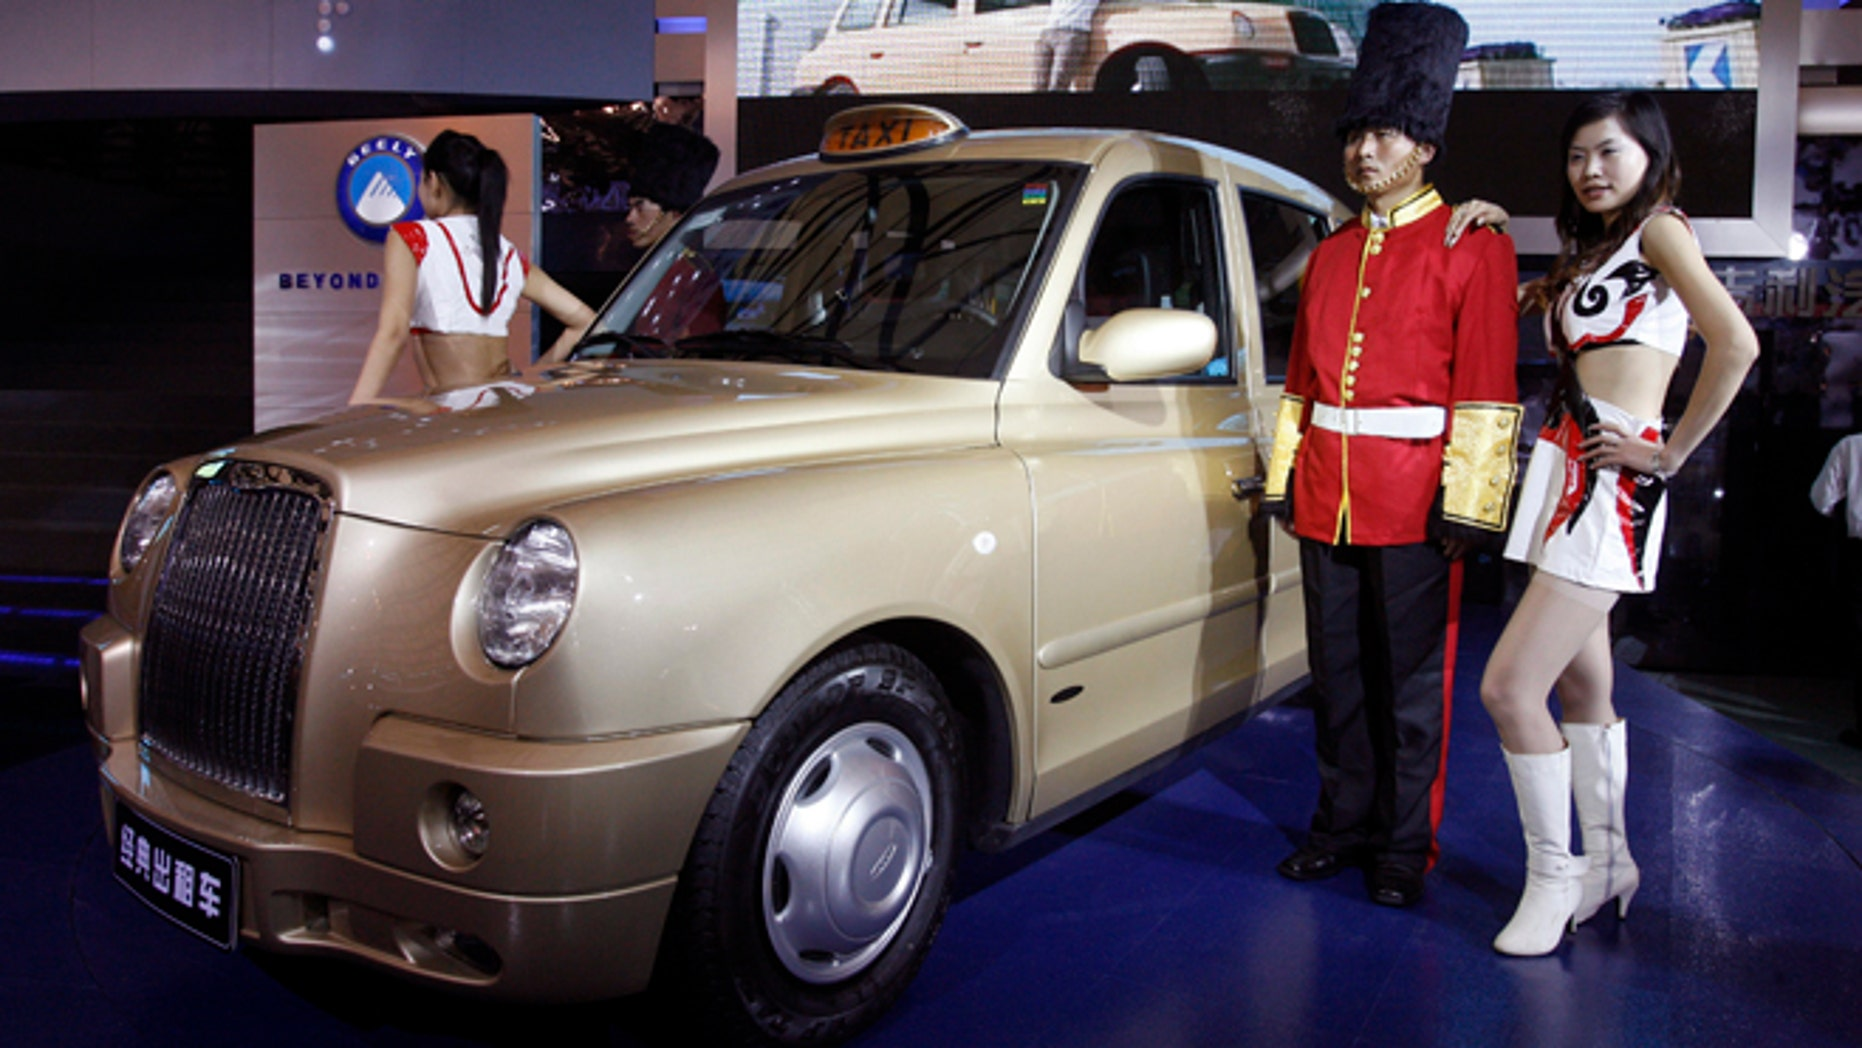 In this photo taken Saturday, April 21, 2007, the TX4 London cab built under a joint venture company between Manganese Bronze Holdings Plc and Geely Automobile Holdings Limited and Shanghai Maple is unveiled during the Shanghai Auto 2007 held in Shanghai, China. The Chinese automaker that bought Sweden's Volvo Cars in 2010 has acquired the British manufacturer of the distinctive London cab. Geely Holding Group said Friday, Feb 1, 2013 it bought Manganese Bronze Holdings out of bankruptcy court administration. Geely said it paid just over 11 million pounds ($17.5 million).(AP Photo/Ng Han Guan)